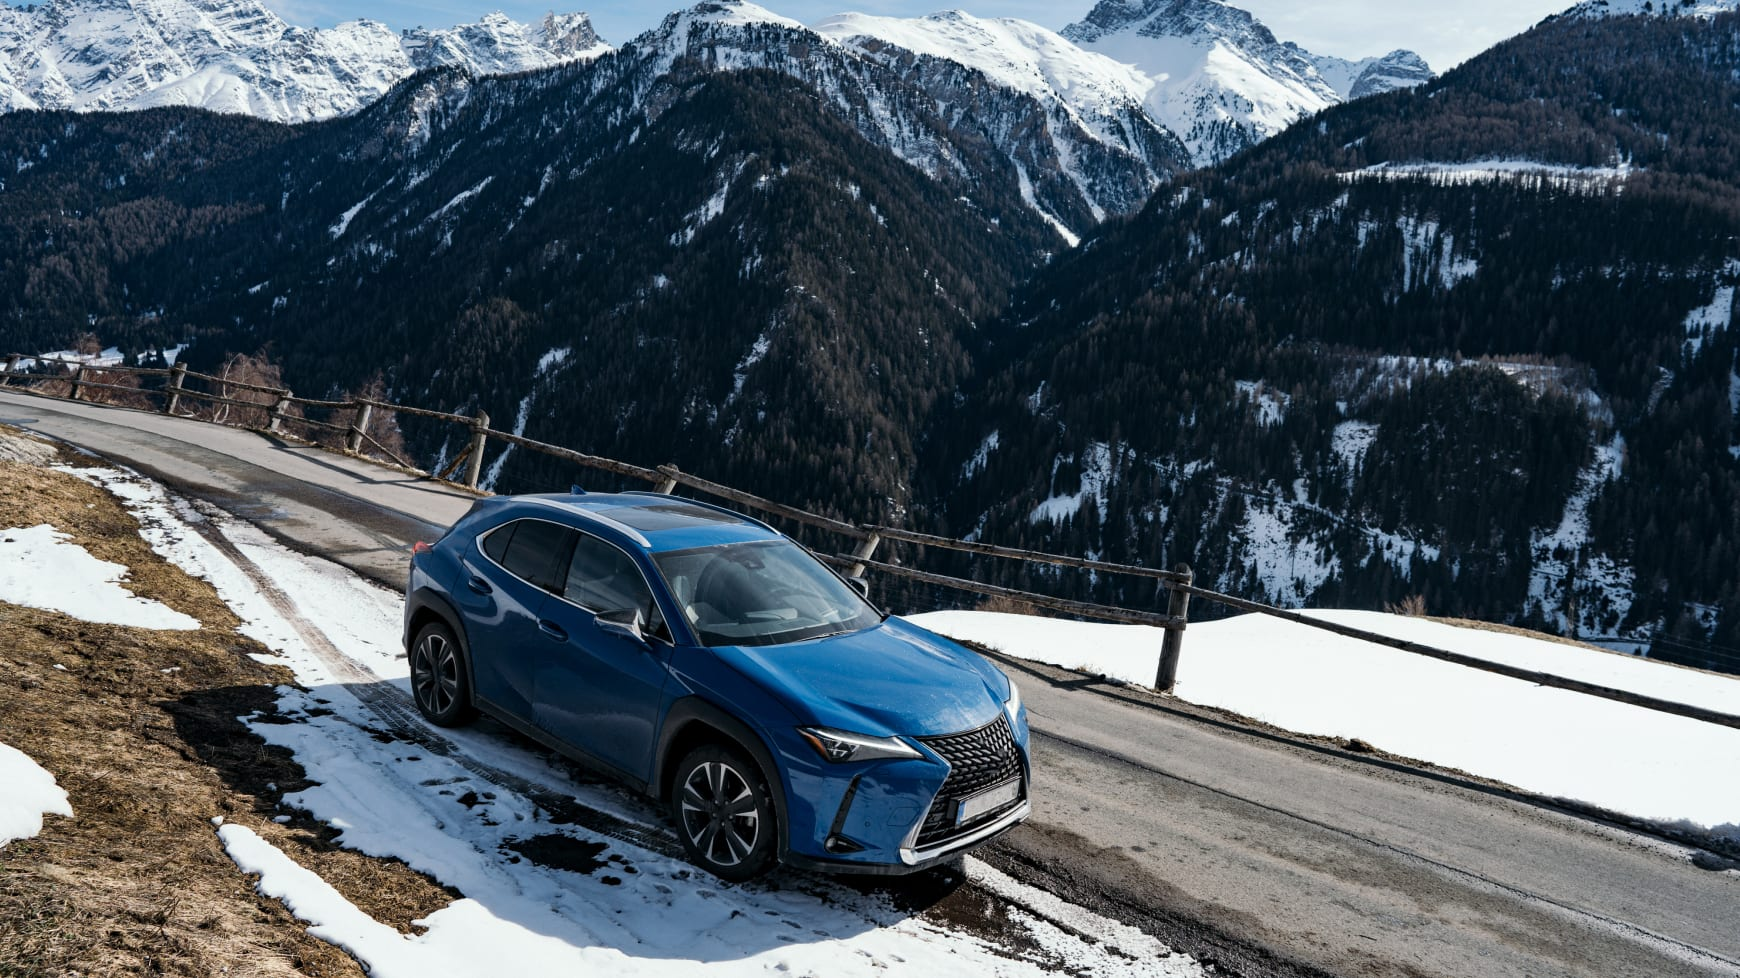 A Crossover Vehicle Driving Through Mixed Weather Conditions in the Mountains